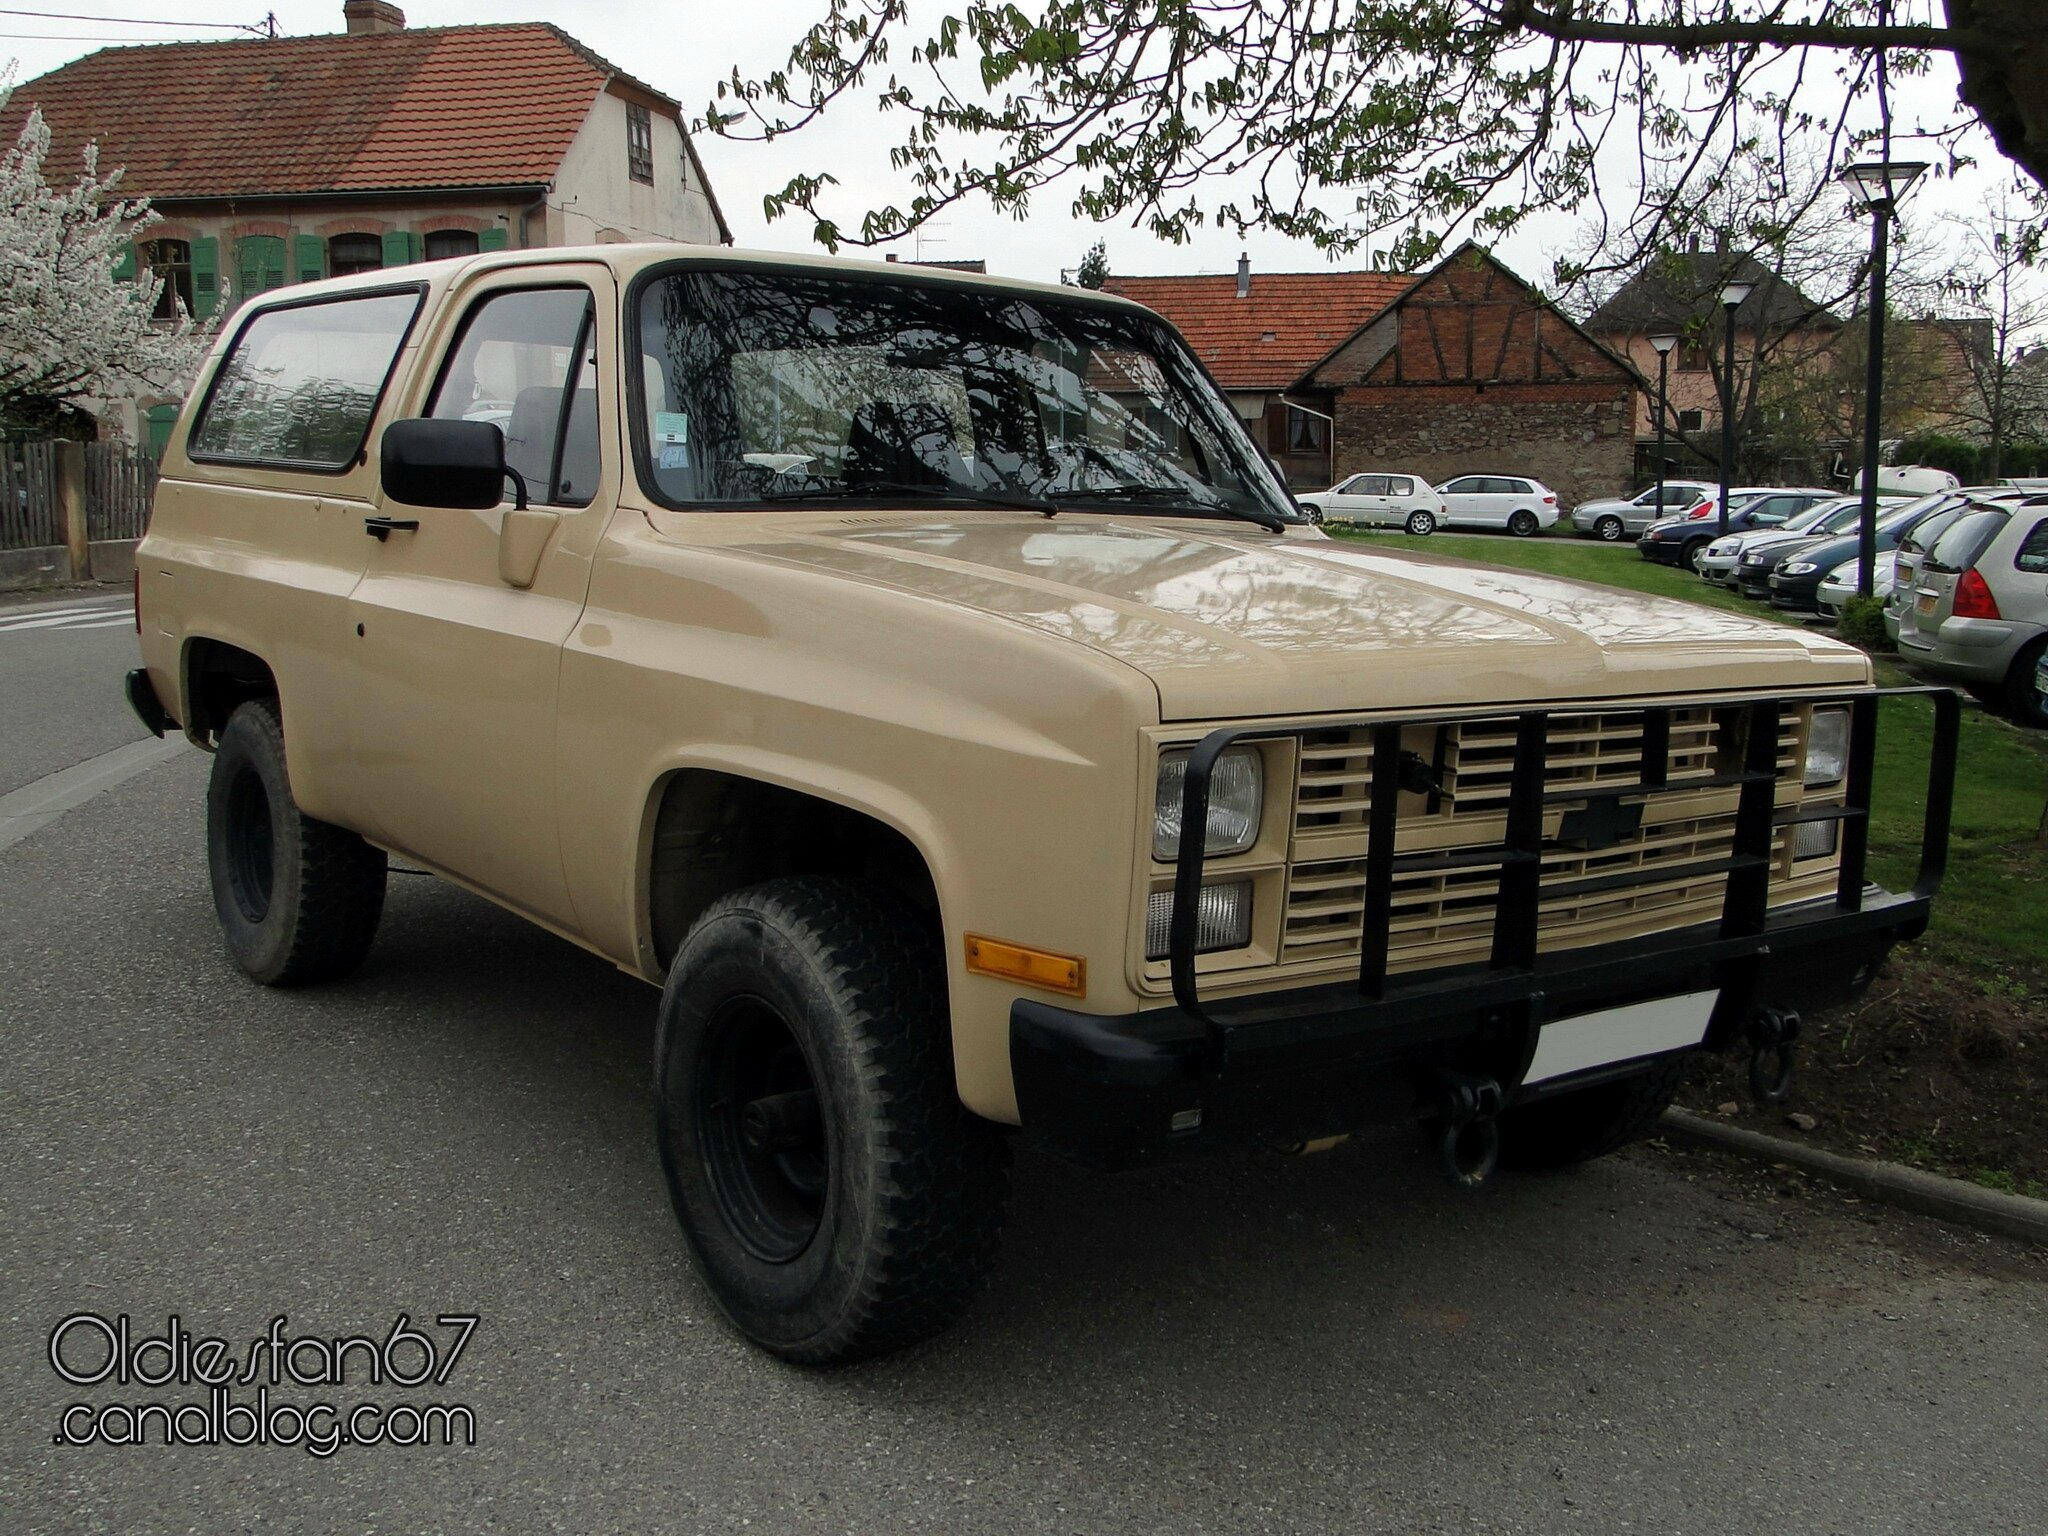 chevrolet blazer 4x4 1983 1985 oldiesfan67 mon blog auto. Black Bedroom Furniture Sets. Home Design Ideas